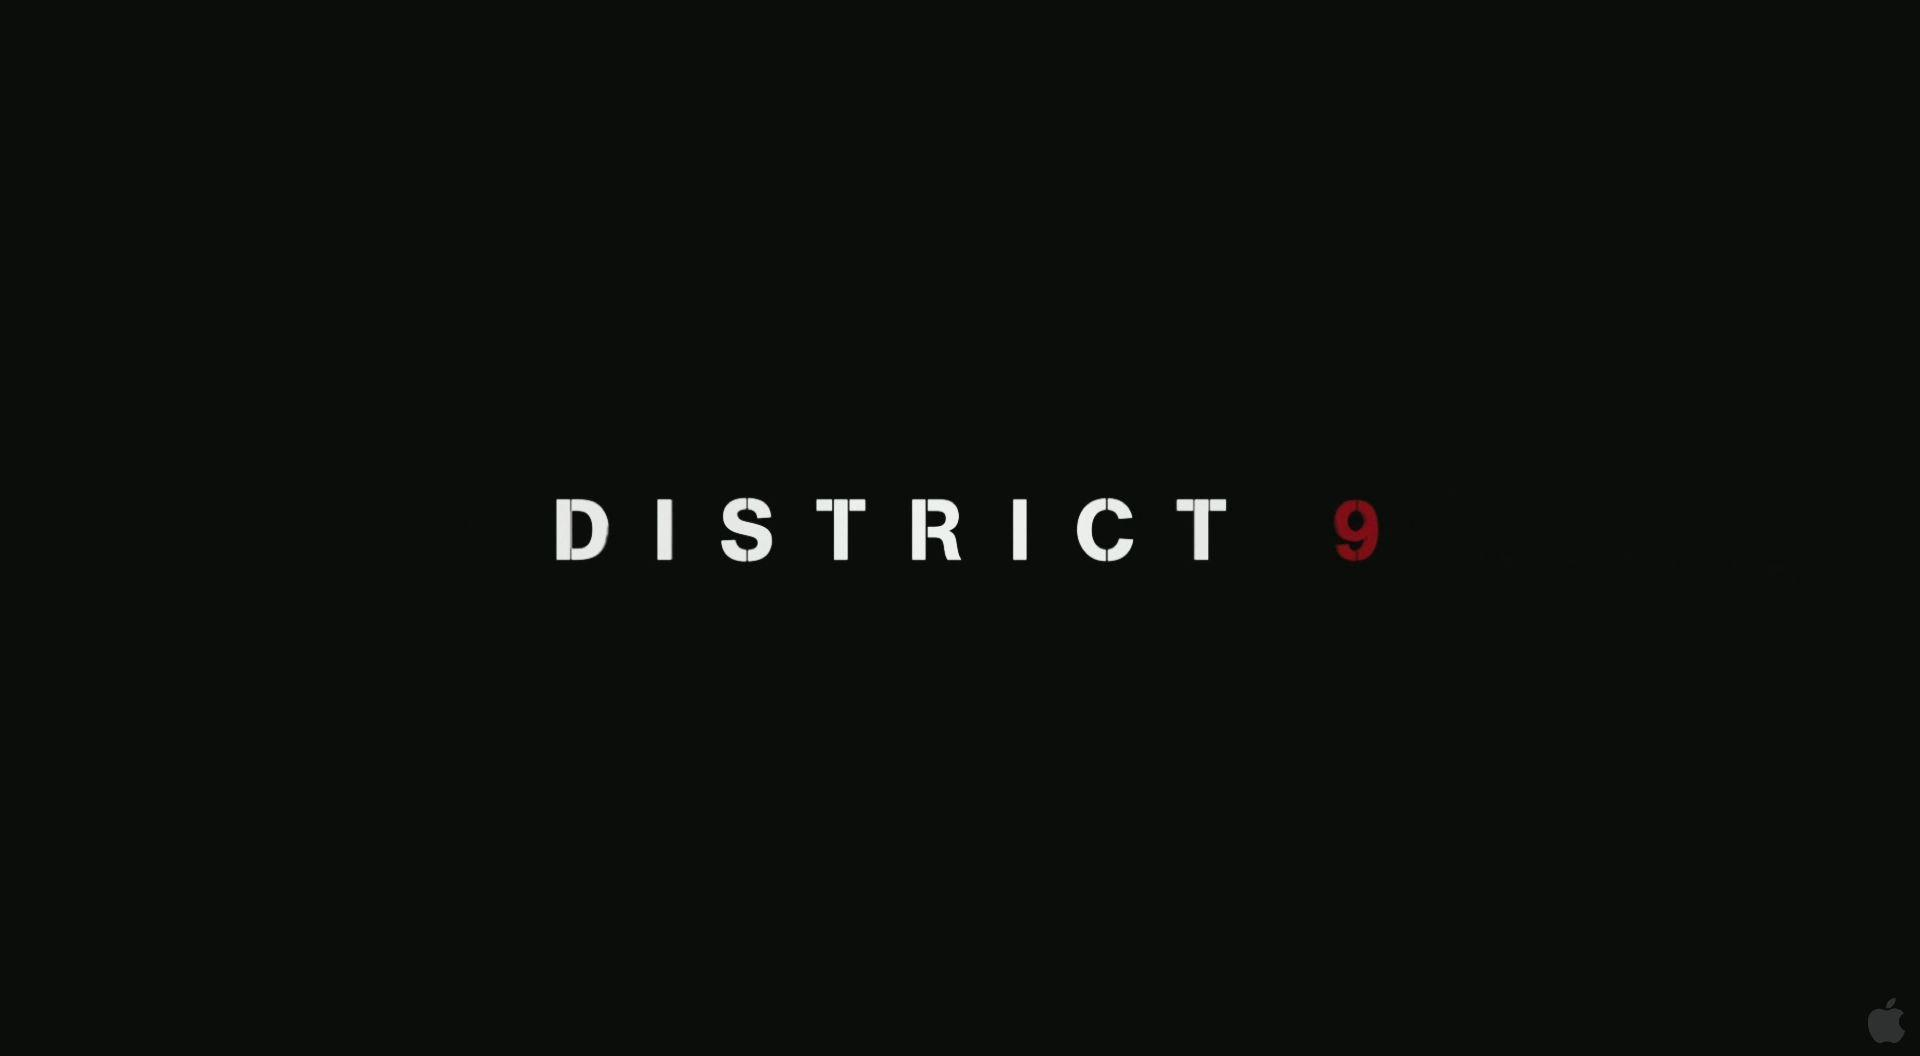 district 9 computer wallpapers - photo #32